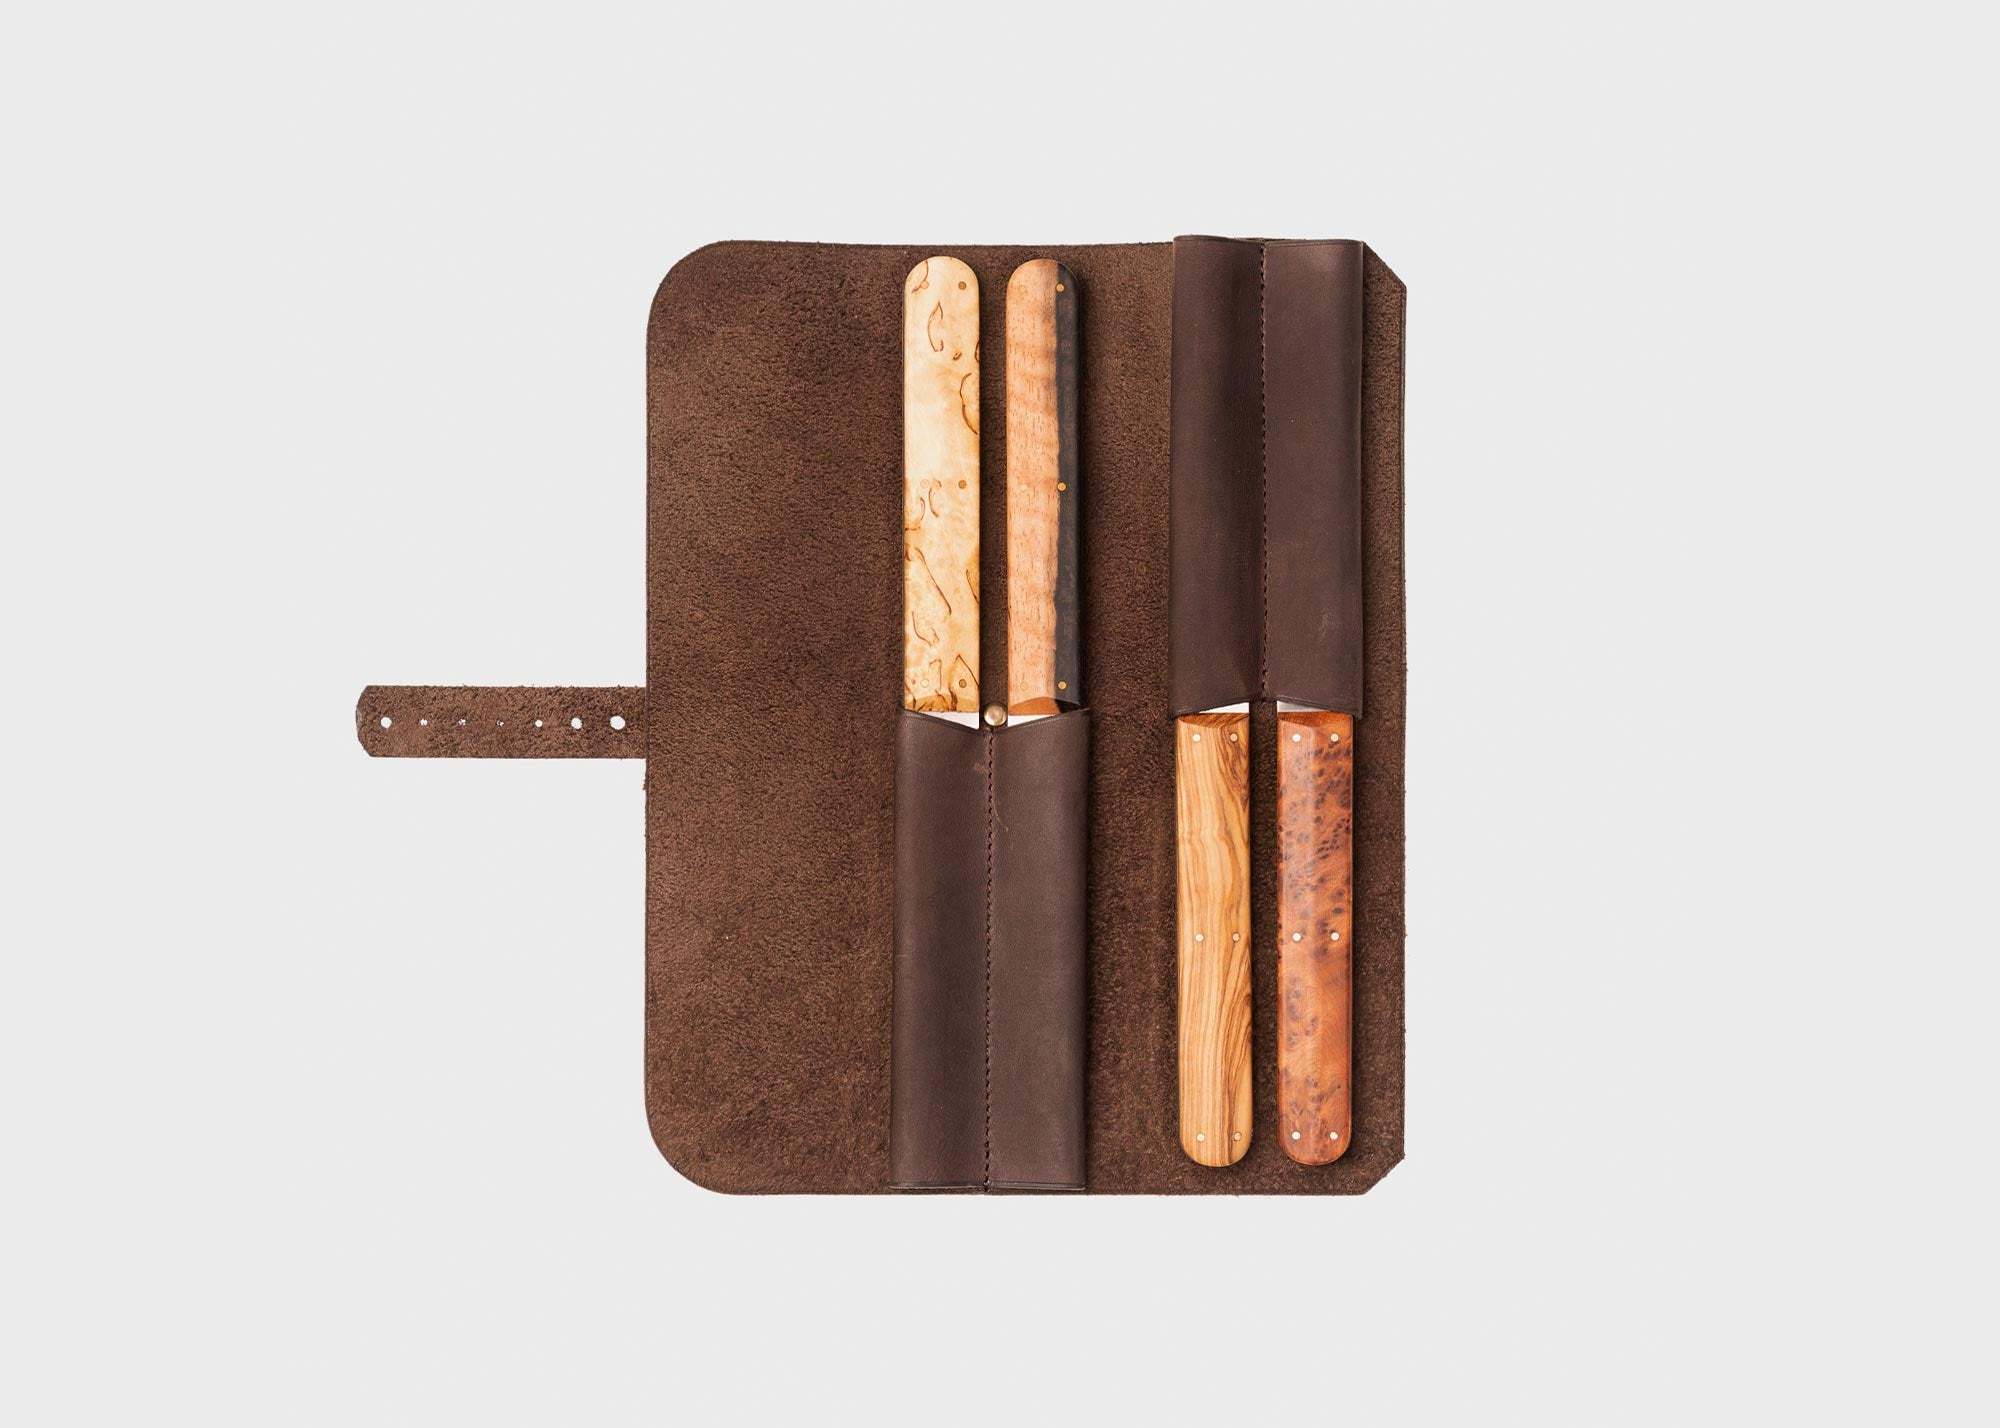 LEATHER BUNDLE FOR TABLE OR STEAK KNIVES